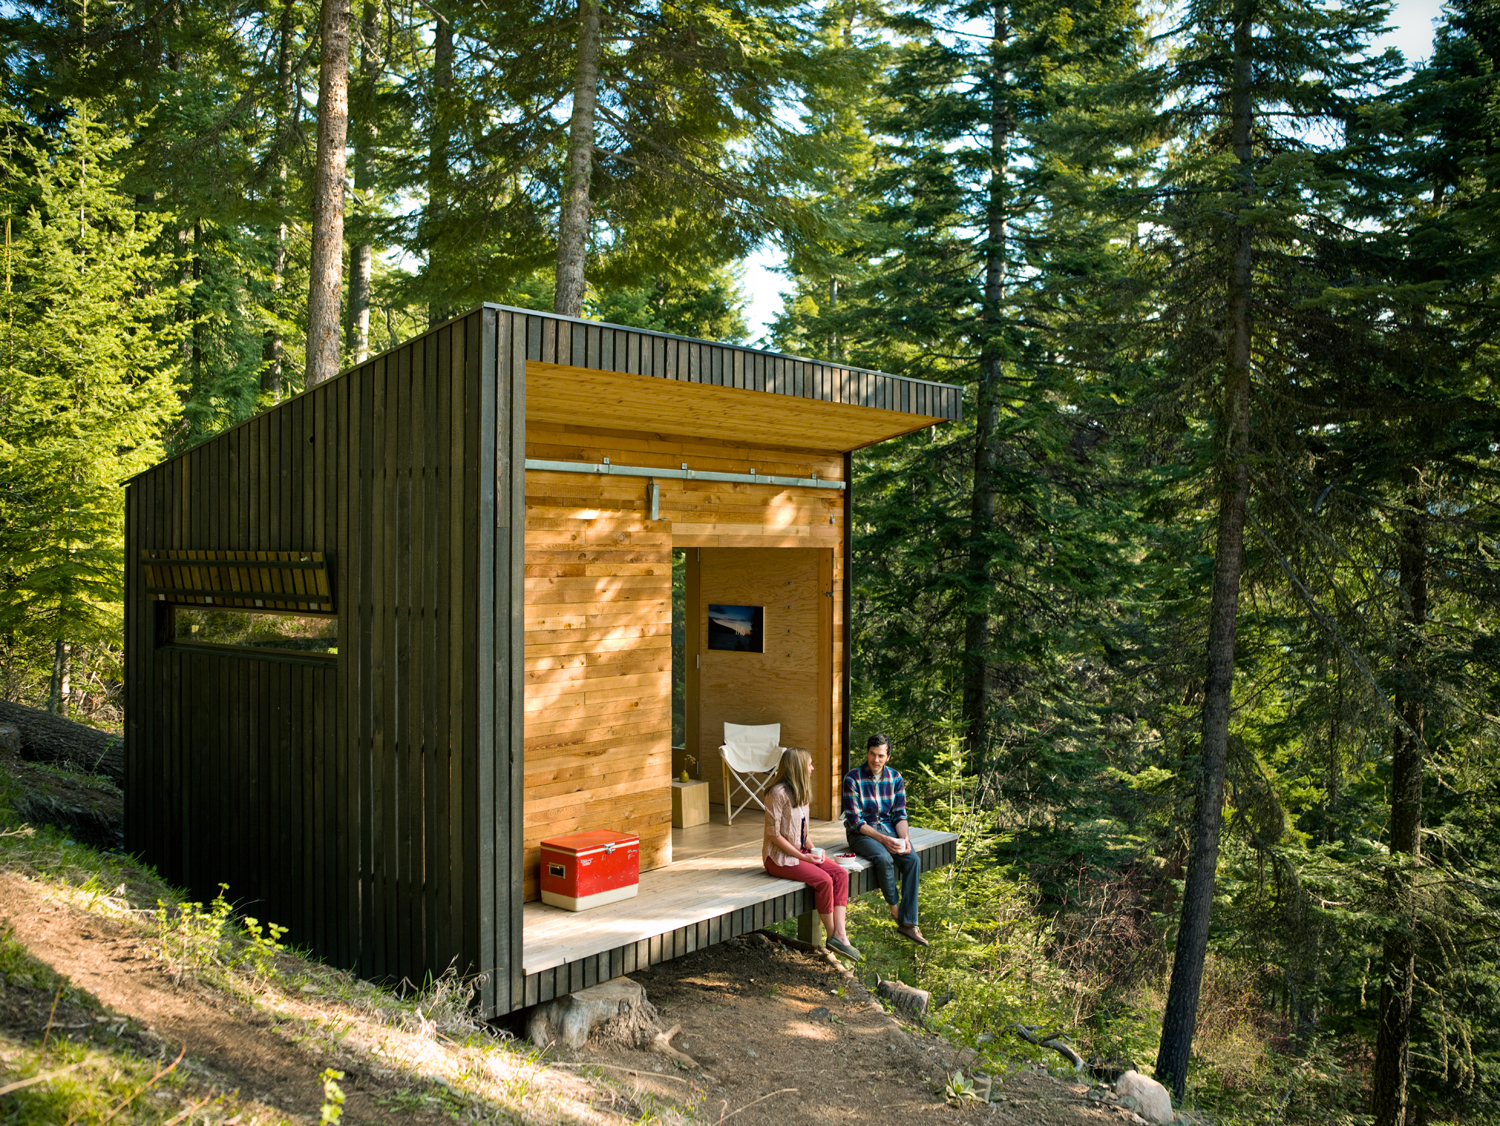 diy cabin in the woods - sunset magazine